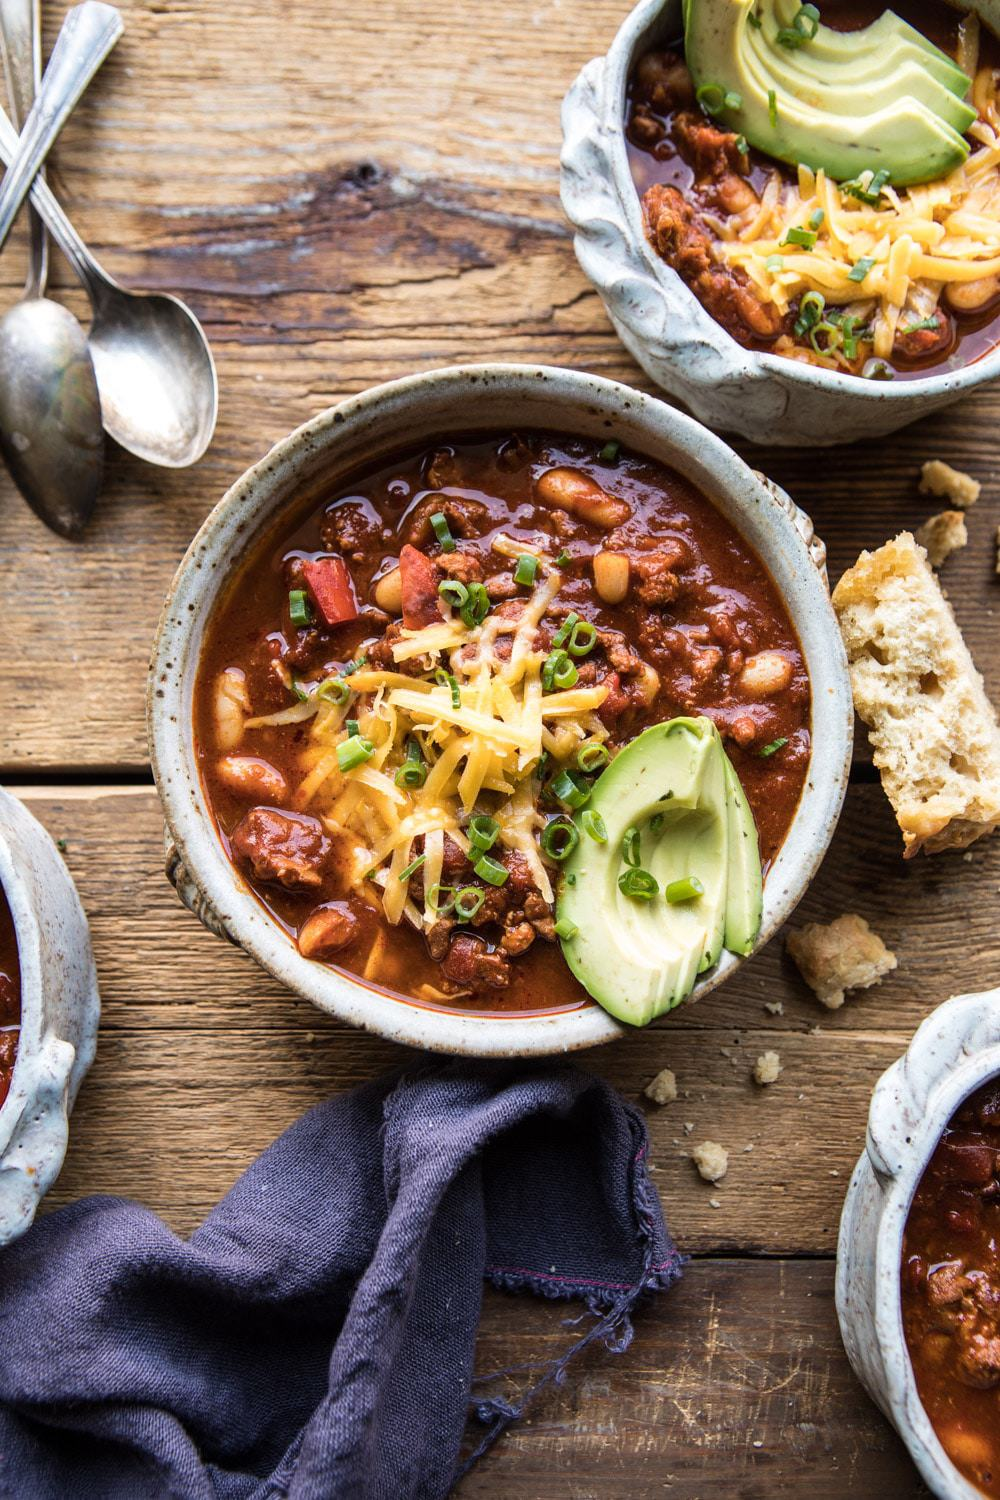 Healthy Slow Cooker Turkey and White Bean Chili | halfbakedharvest.com #slowcooker #chili #healthyrecipes #turkey